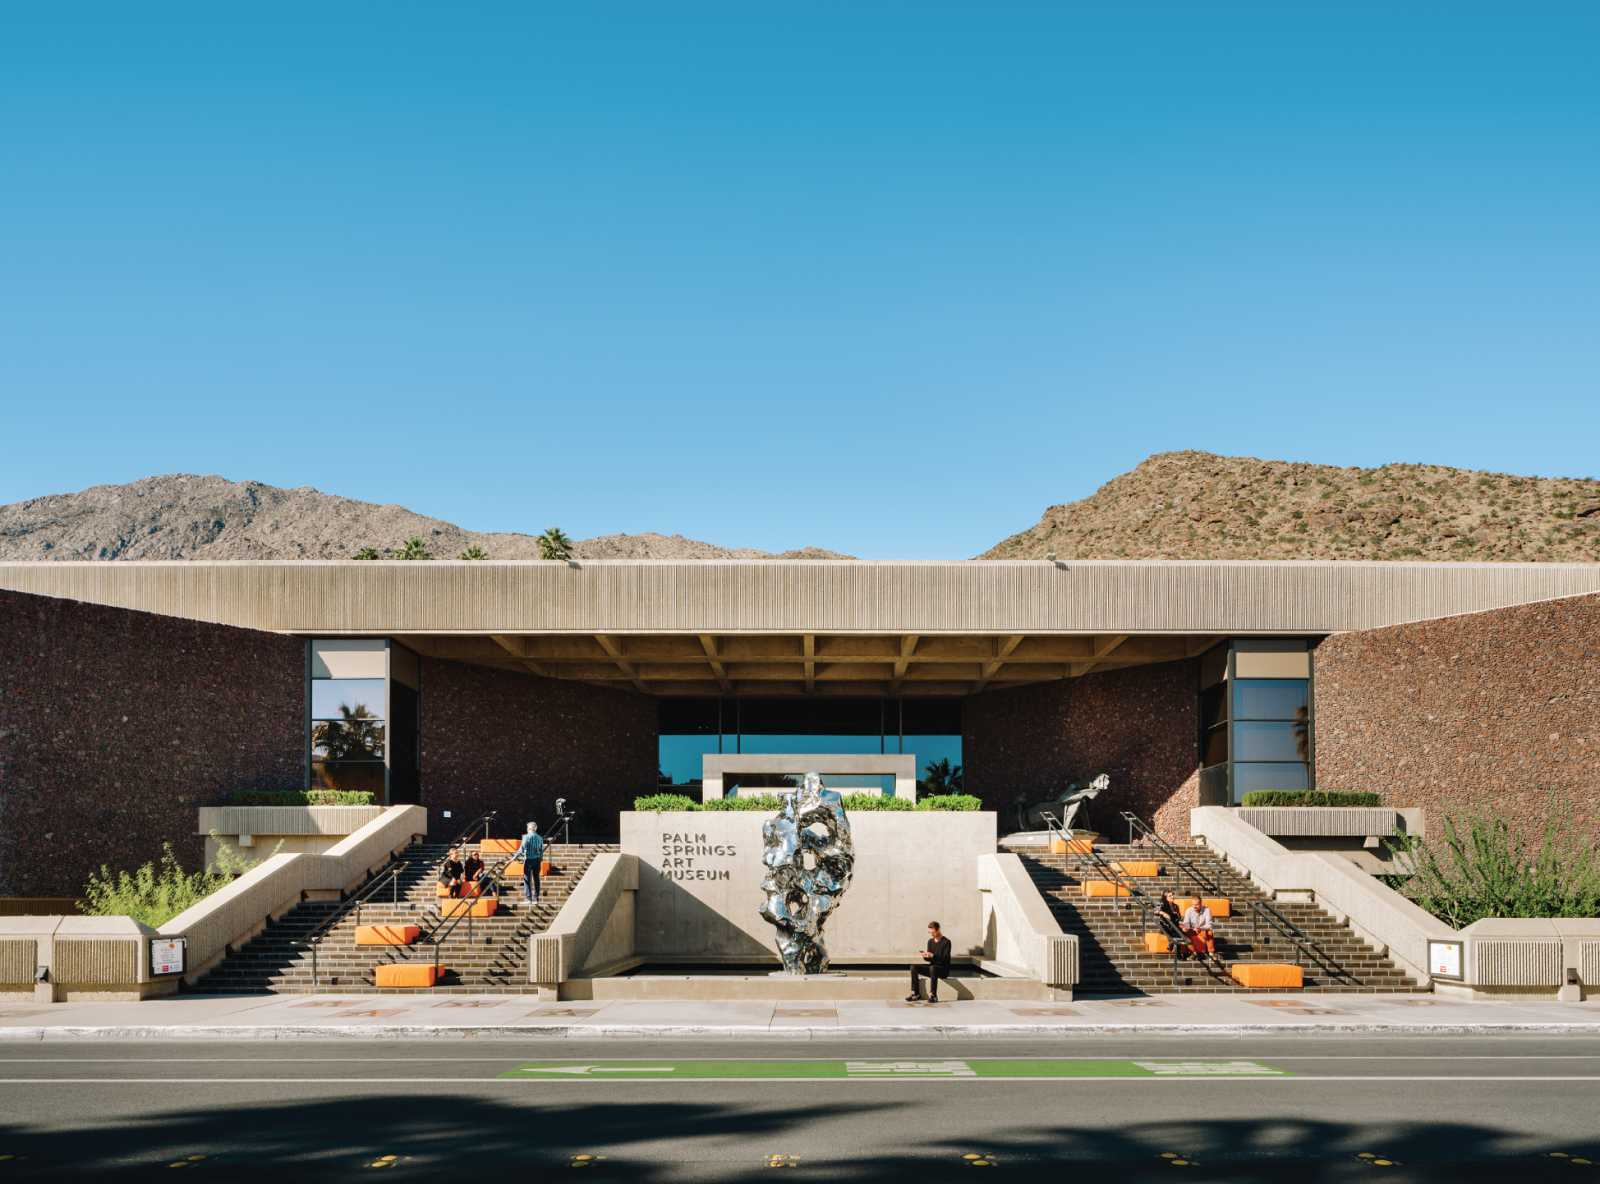 Palm Springs Art Museum by architect E. Stewart Williams